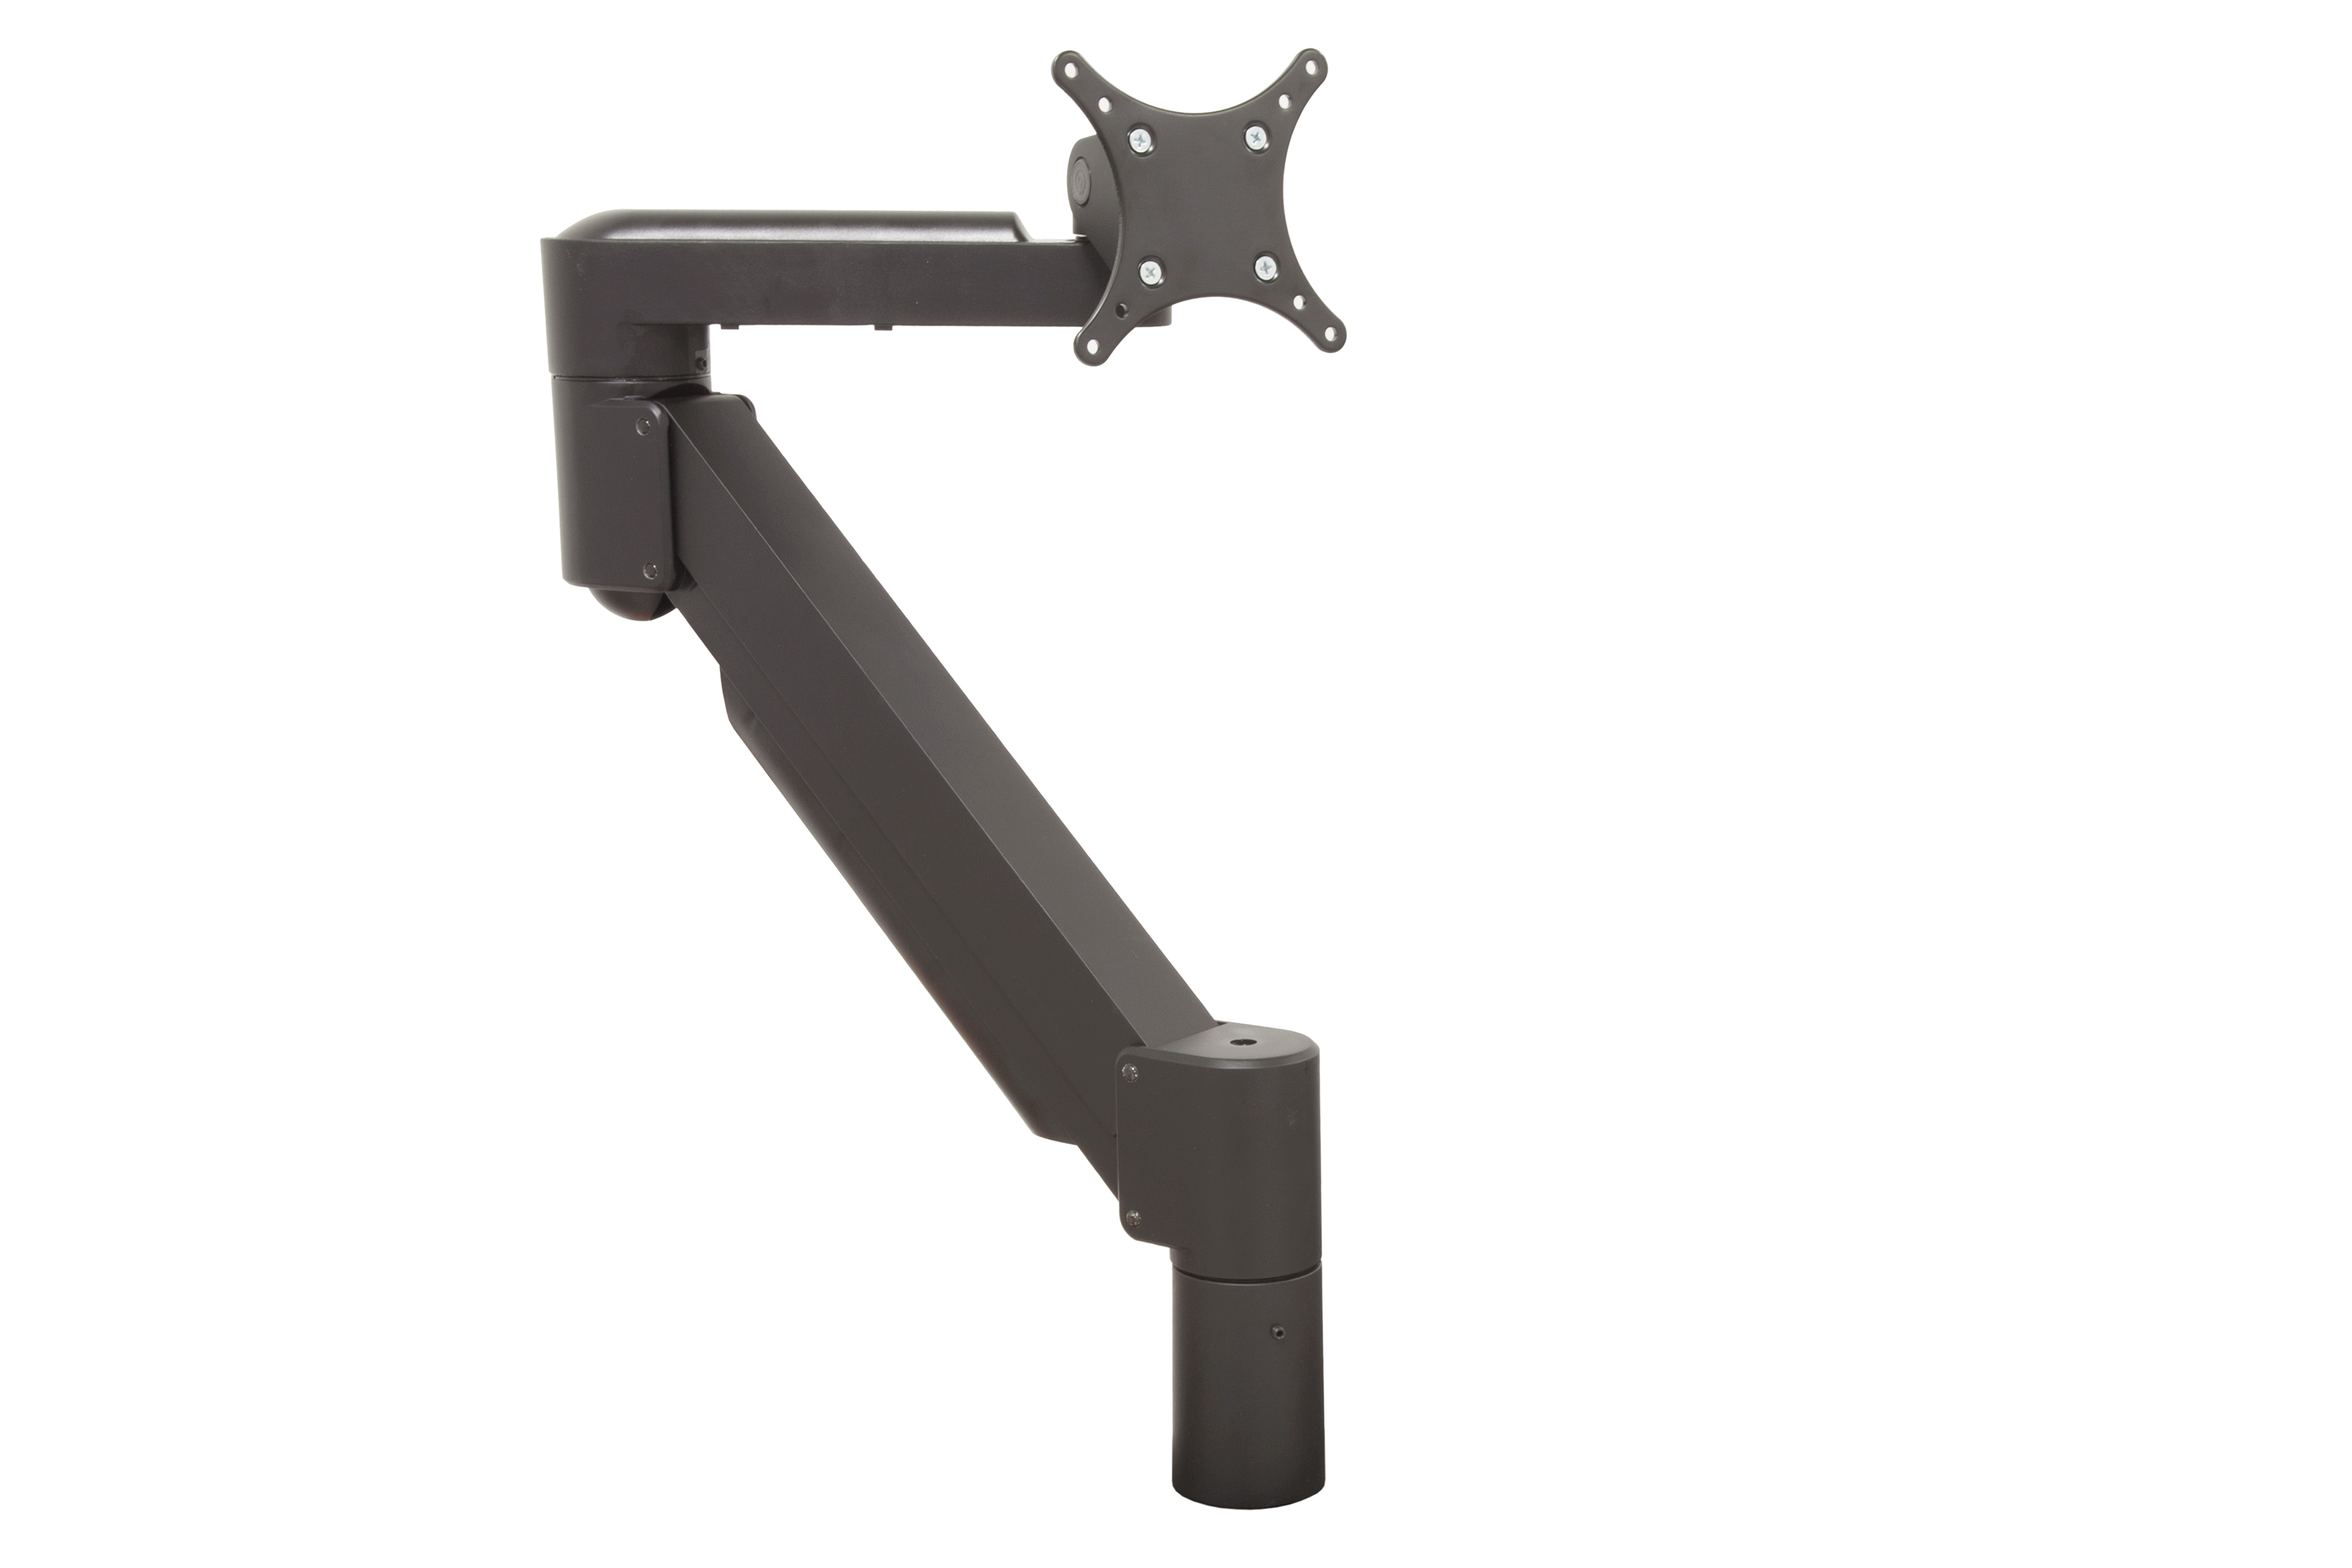 7500 Series S2B Monitor Arm 6-21 lb capacity